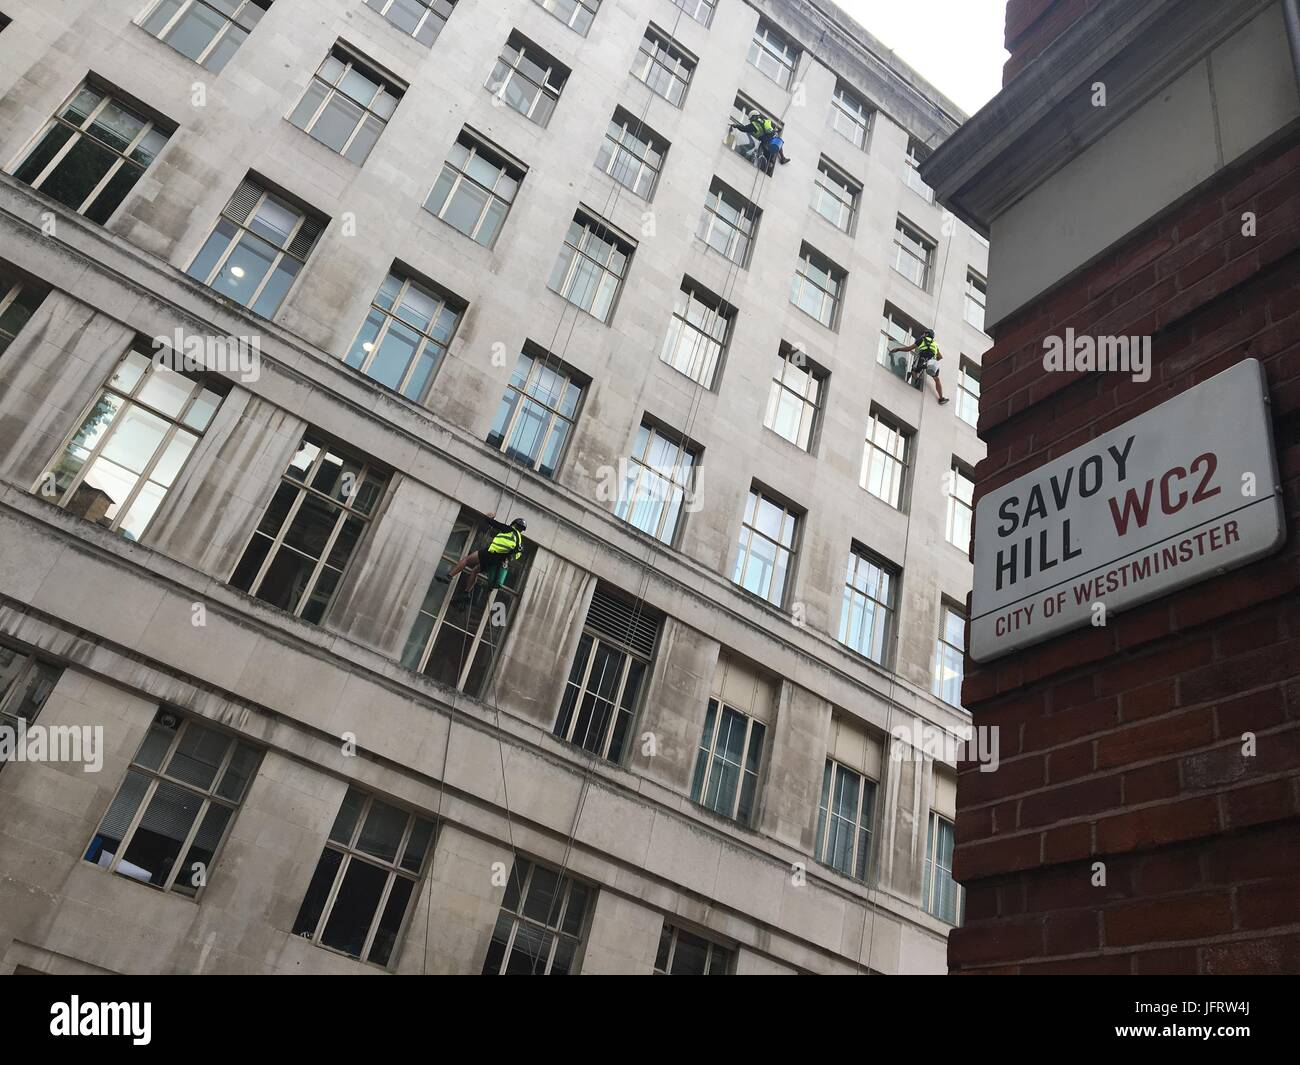 High rise window cleaners are working on a building in Central London by the Savoy Hill street in WC2. Stock Photo